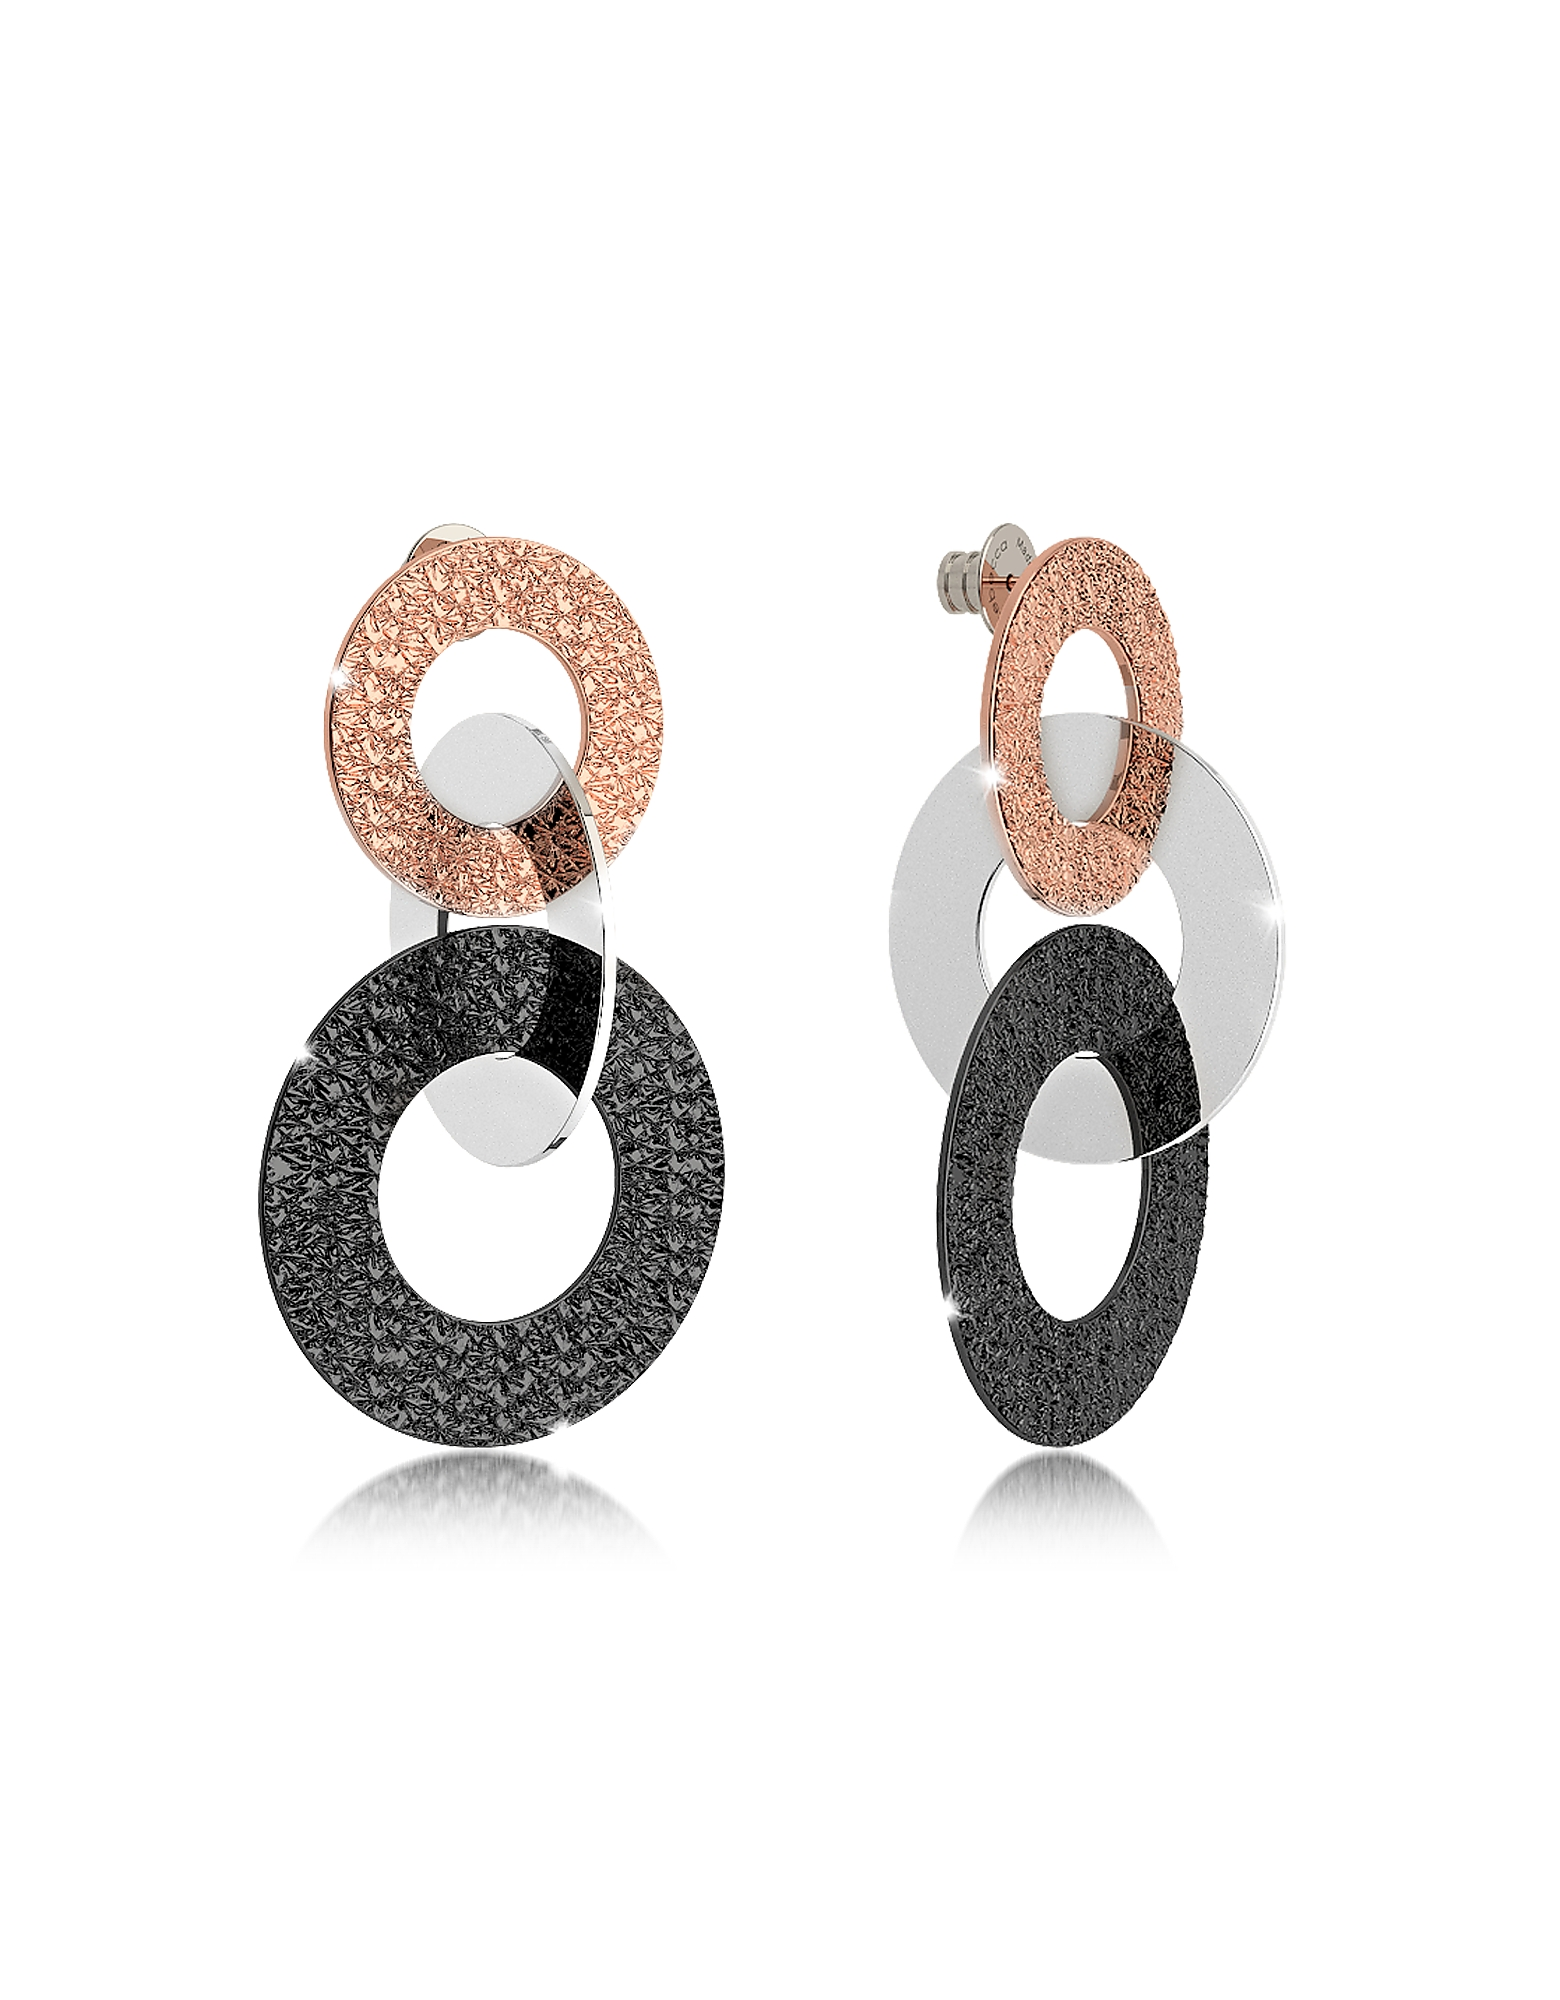 Rebecca Earrings, R-Zero Black Ruthenium and Rose Gold Over Bronze Stud Drop Earrings